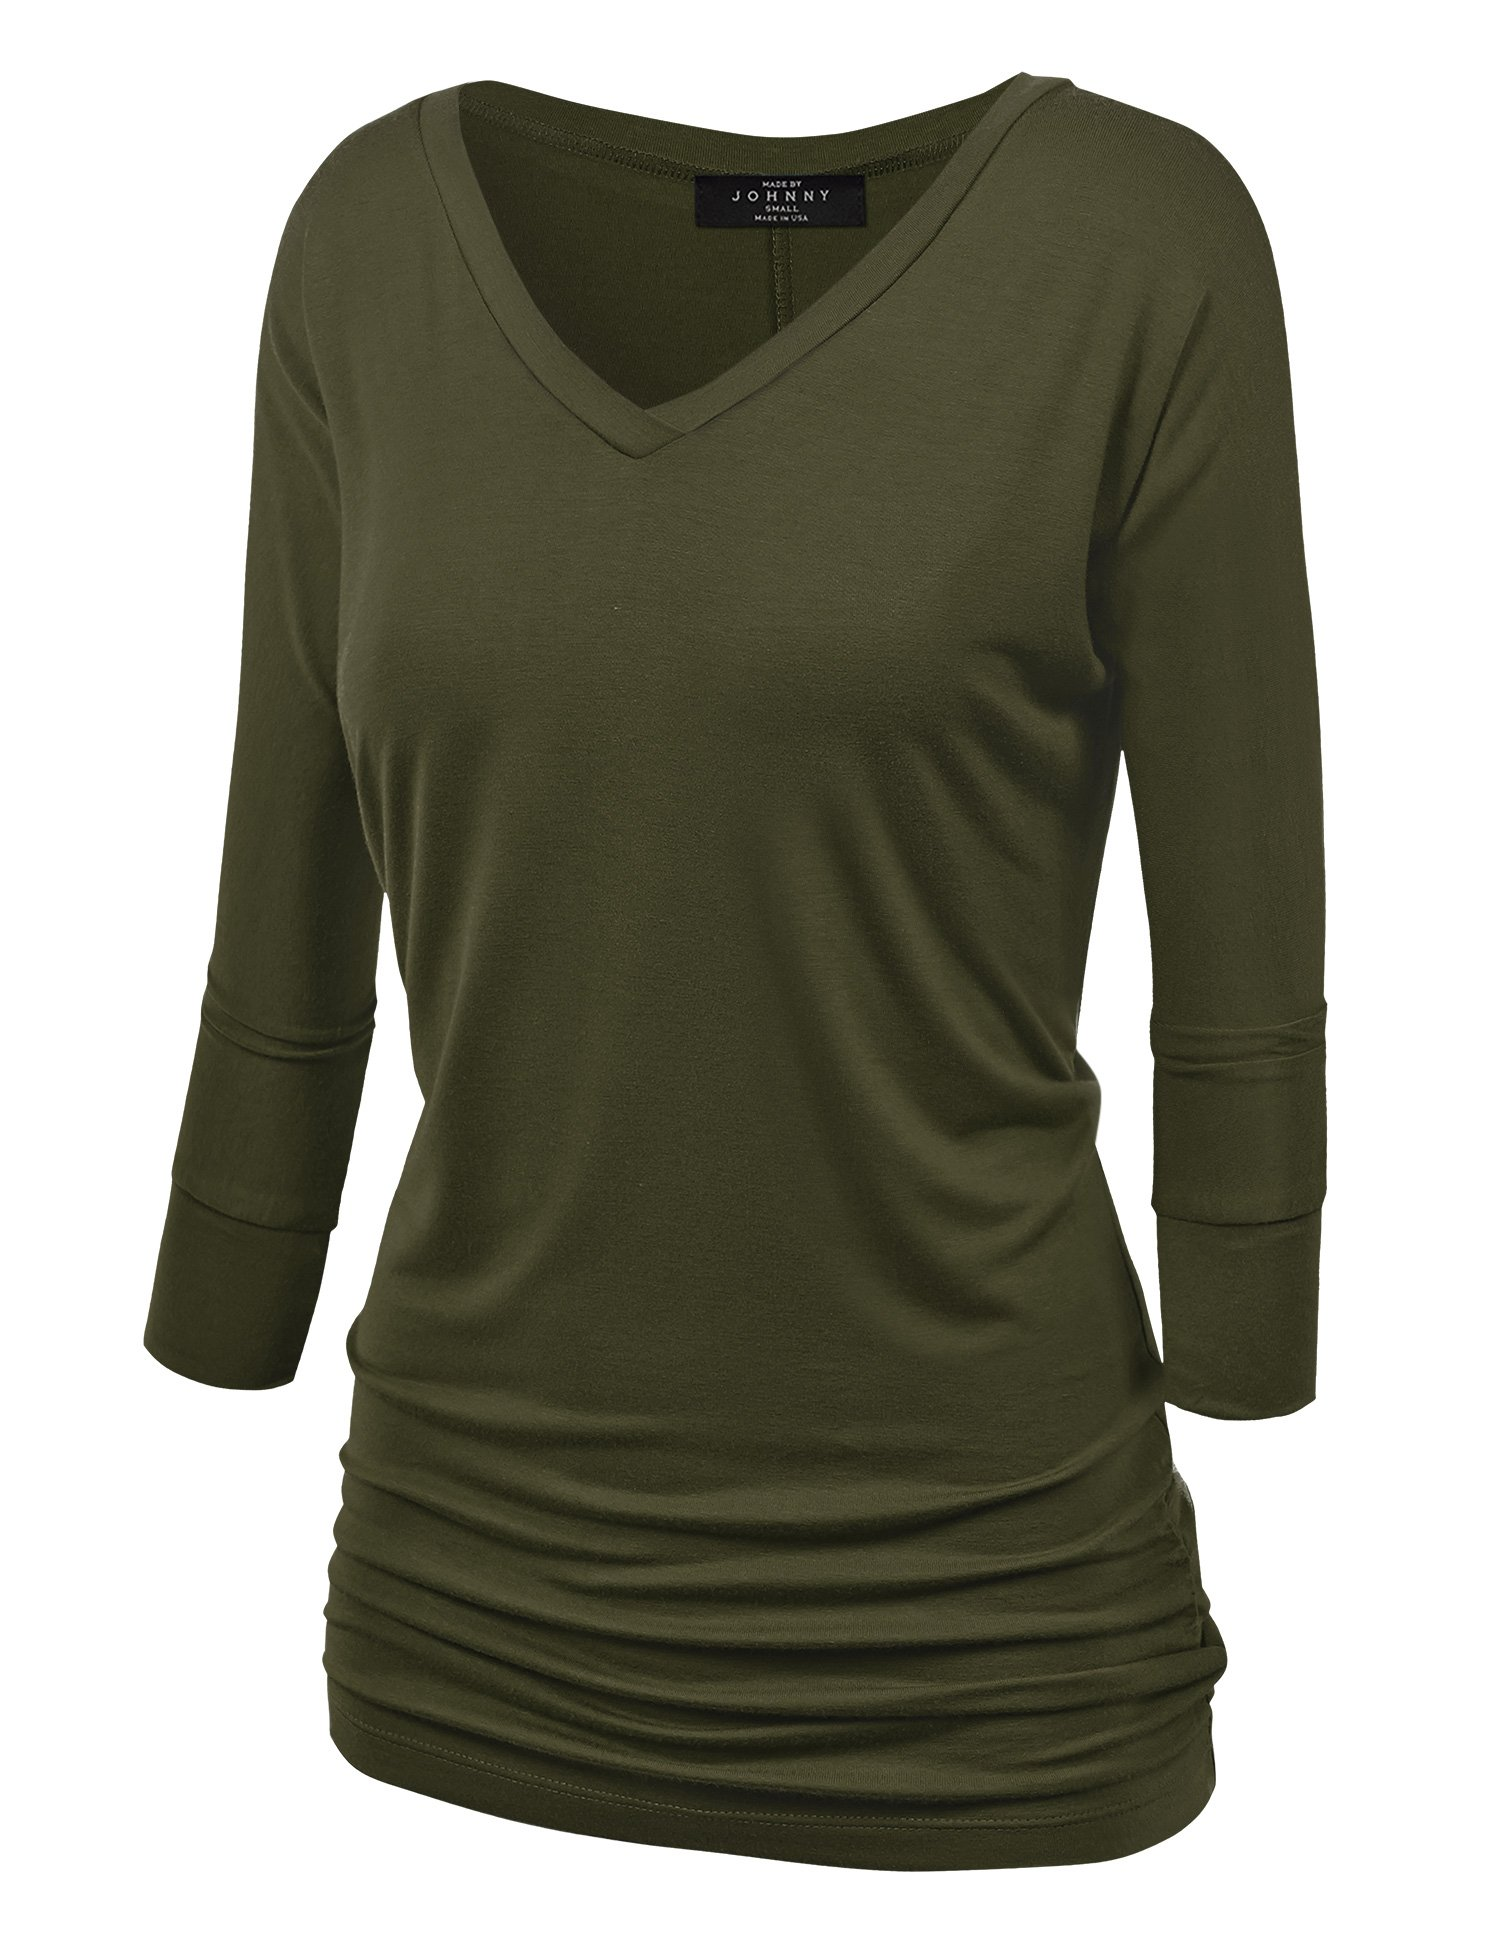 Made By Johnny WT1036 Womens V Neck 3/4 Sleeve Dolman Top with Side Shirring XXXXXL Olive